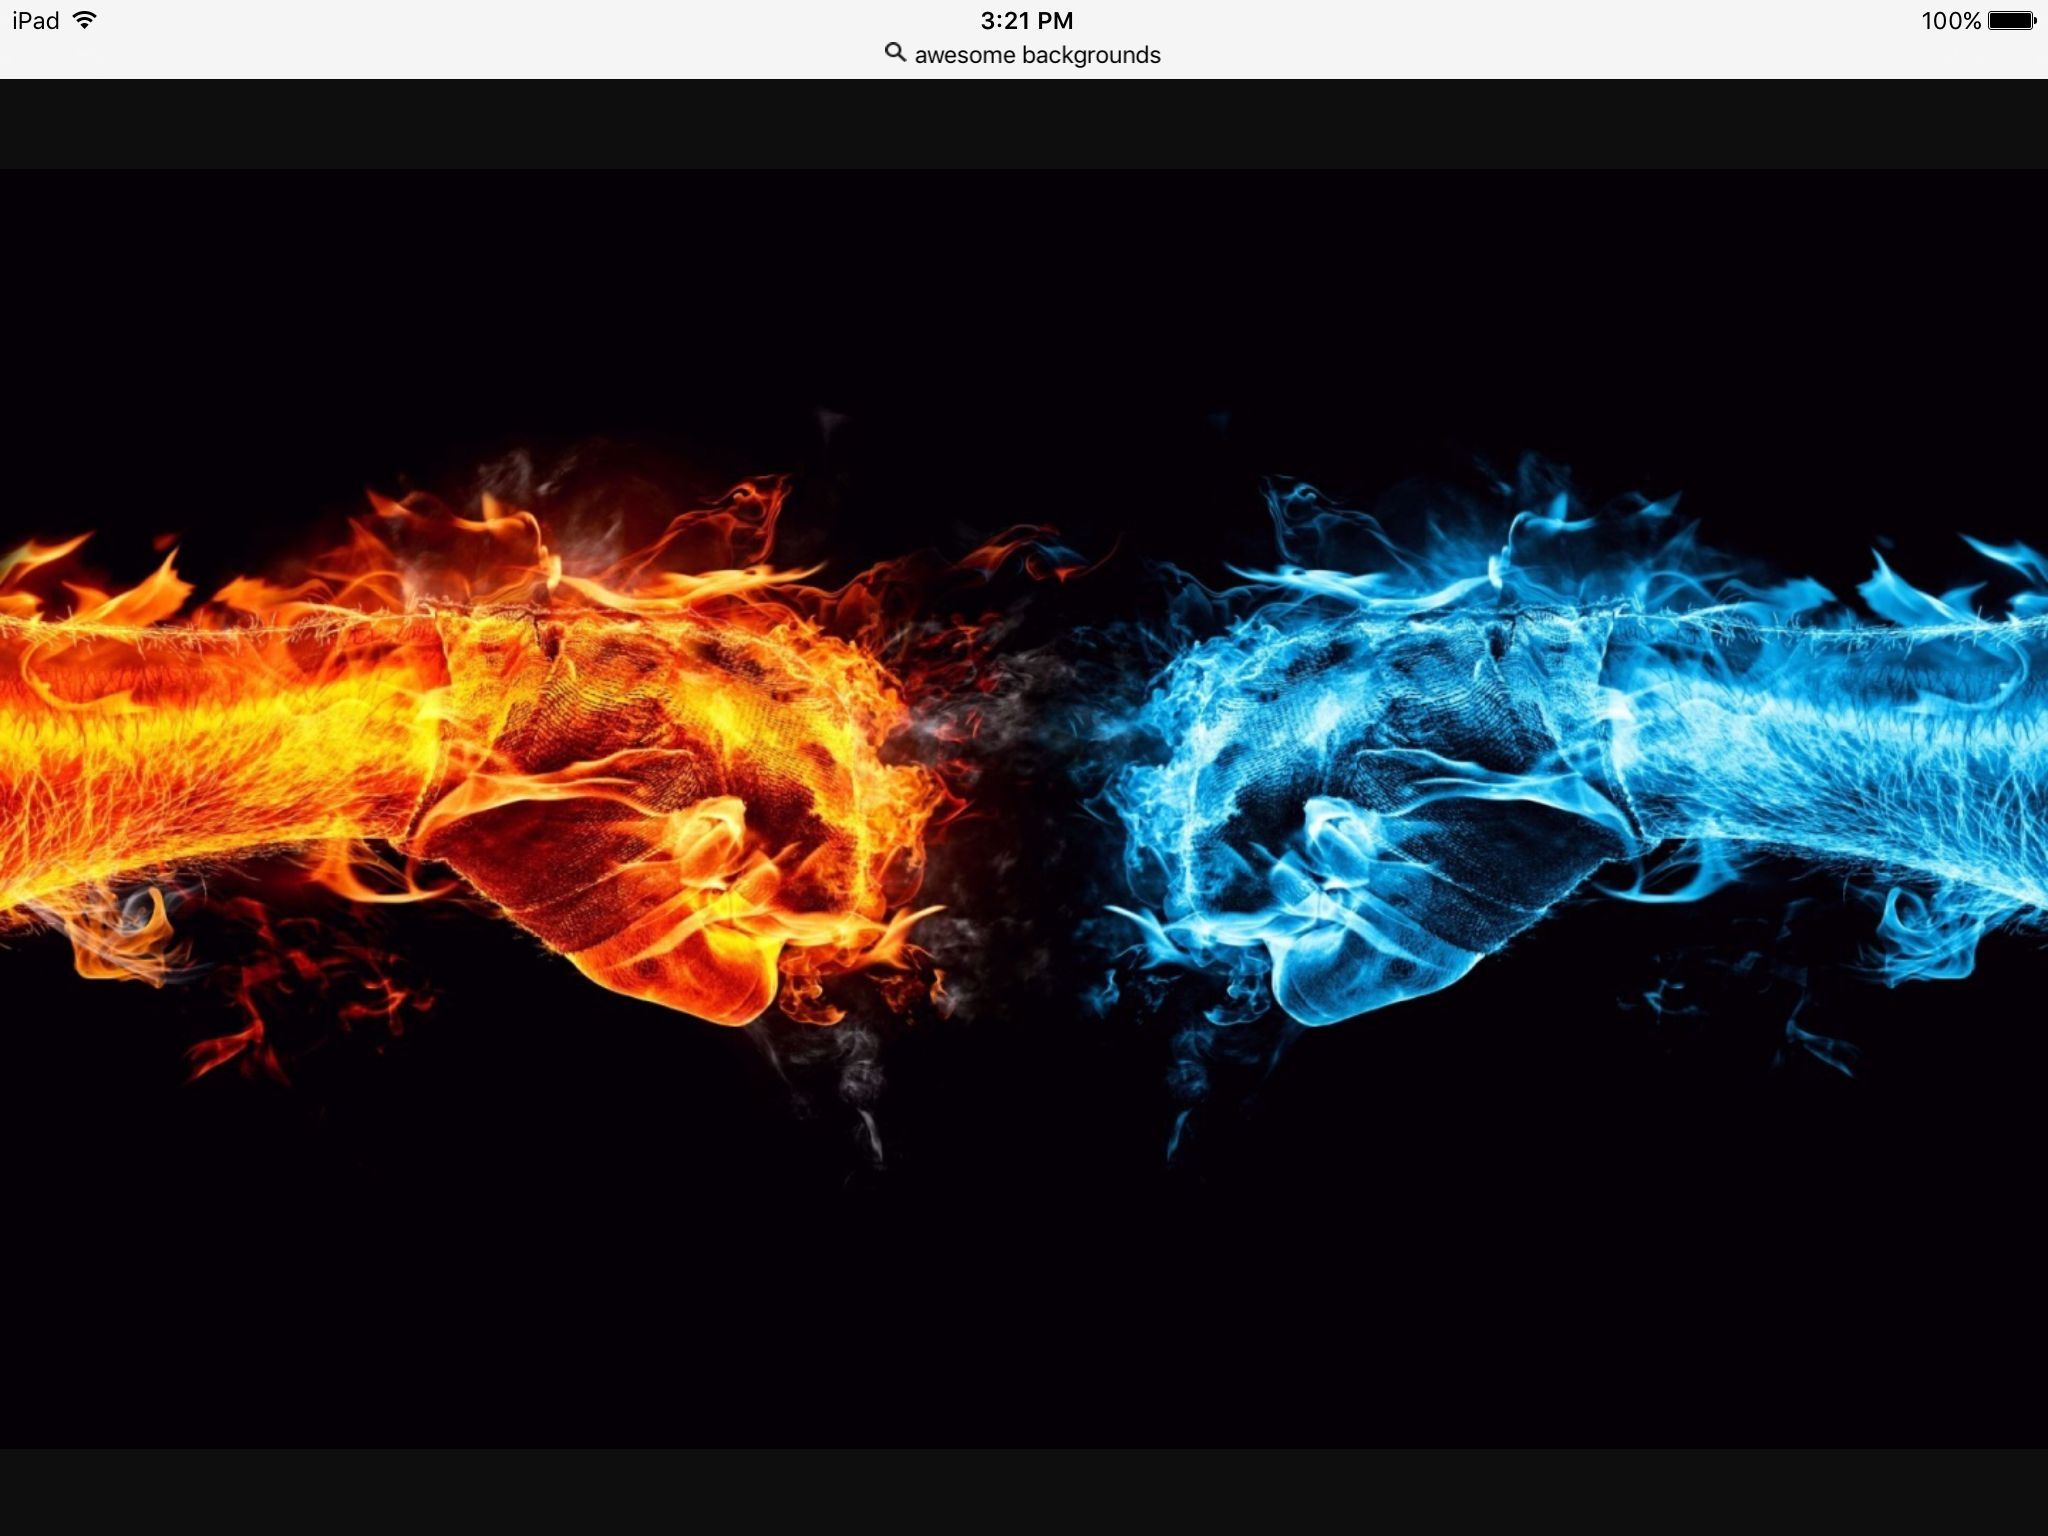 cool fire hands fight 8k wallpaper girls uhd pinterest